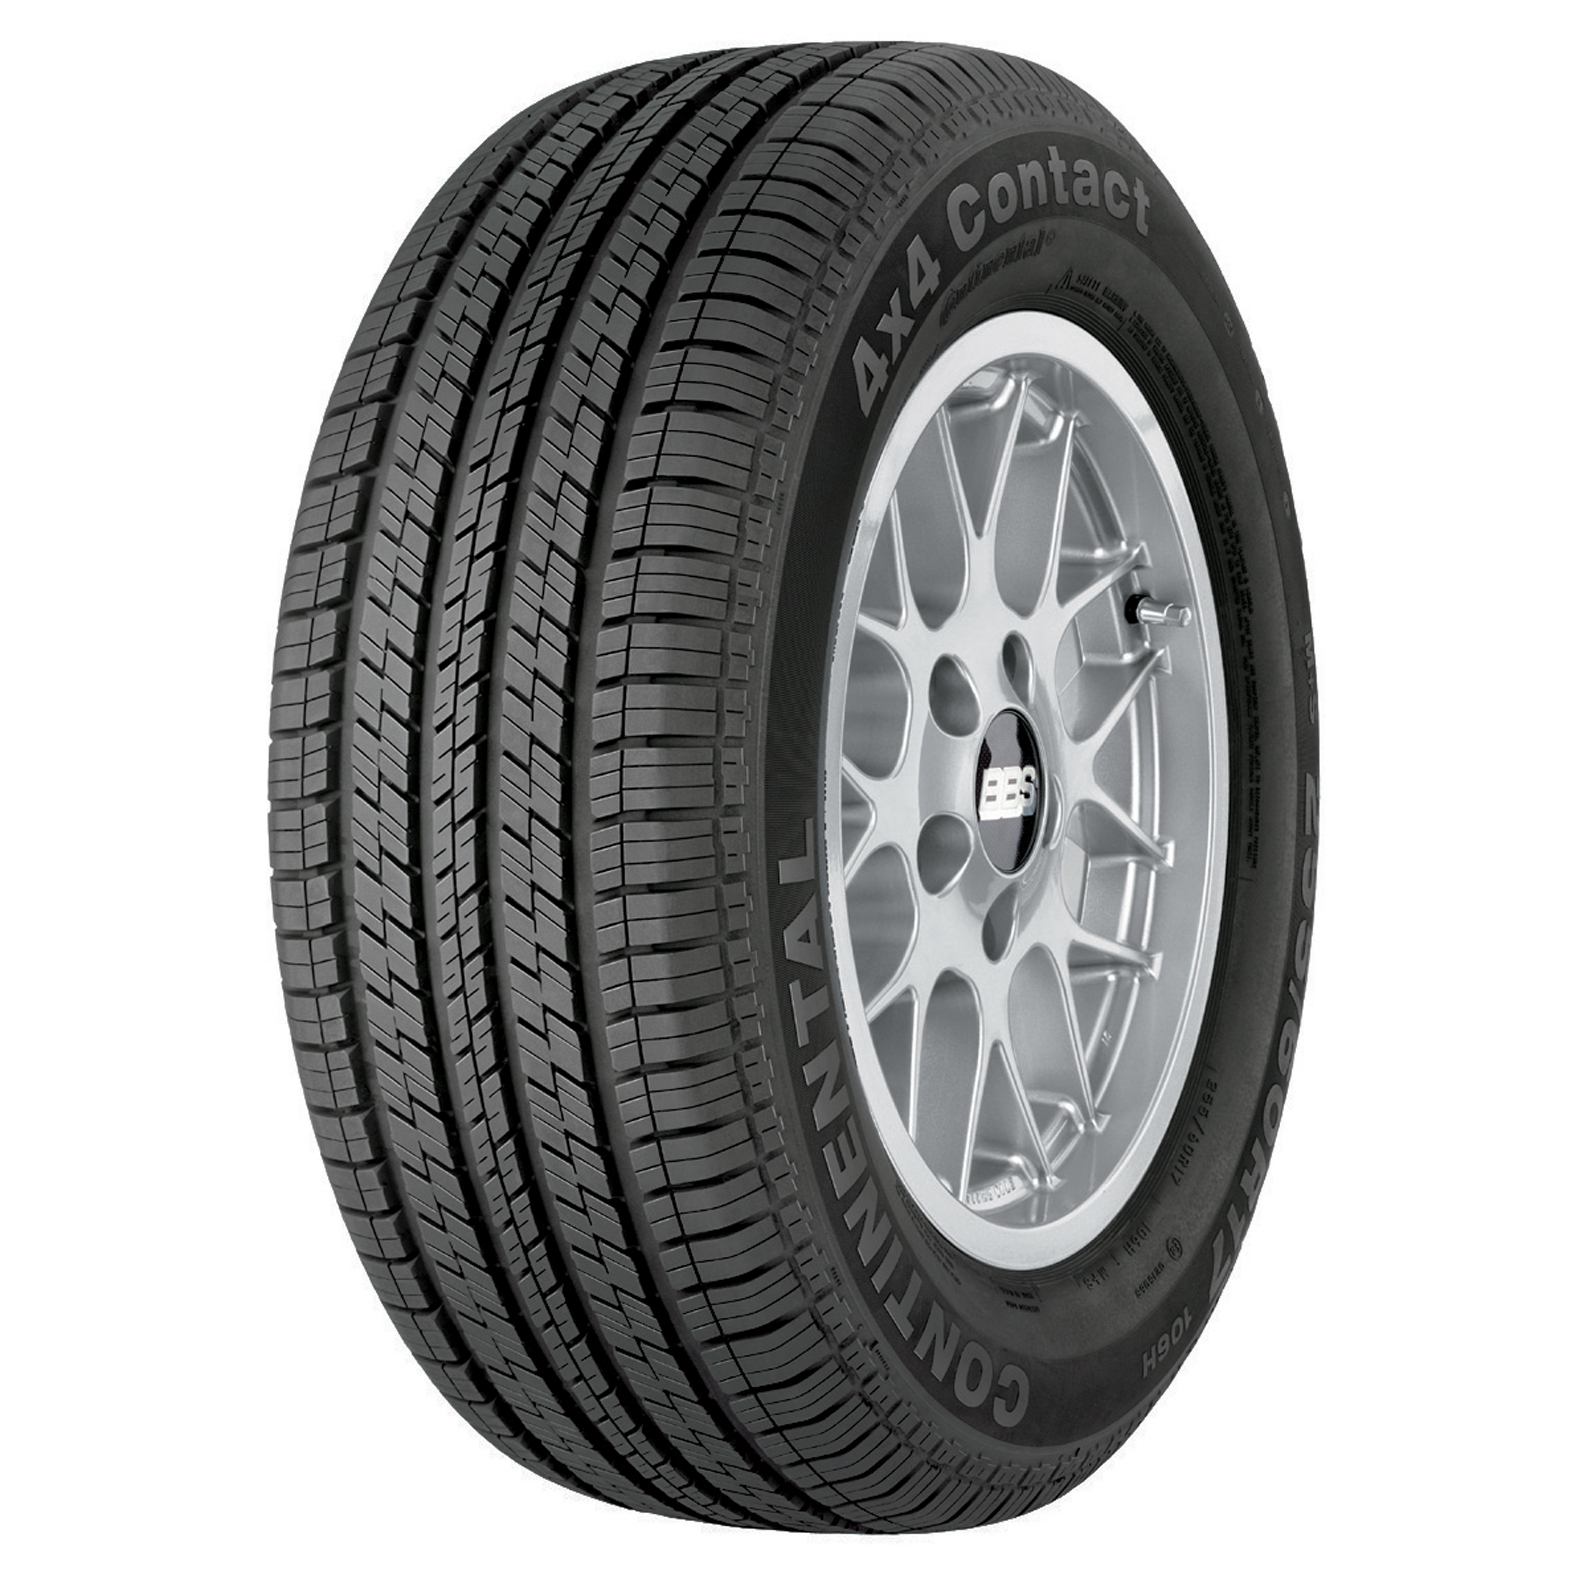 Continental CONTI4X4CONTACT tire - angle